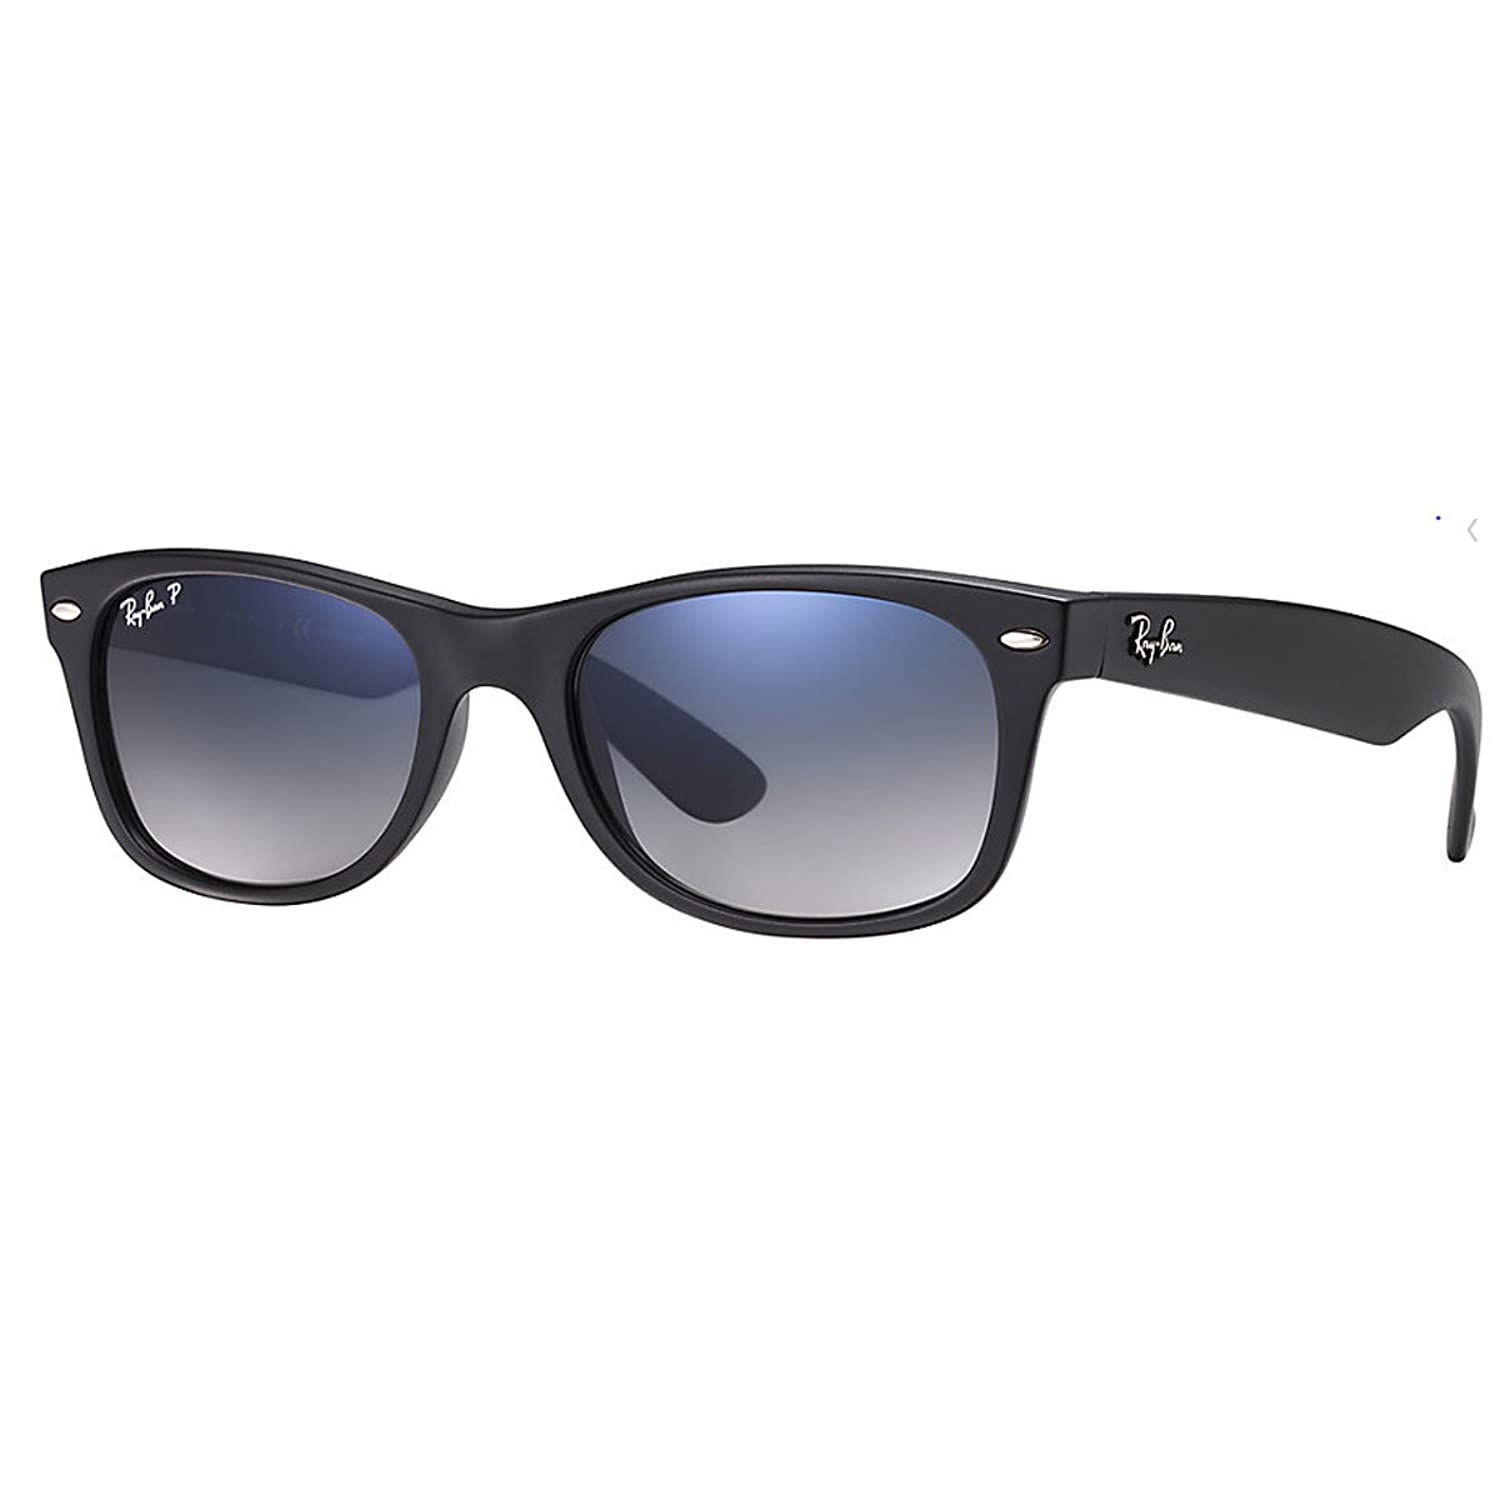 Amazon.com: Ray-Ban NEW WAYFARER - MATTE BLACK Frame POLAR BLUE GRAD. GREY Lenses 55mm Polarized: Ray-Ban: Clothing